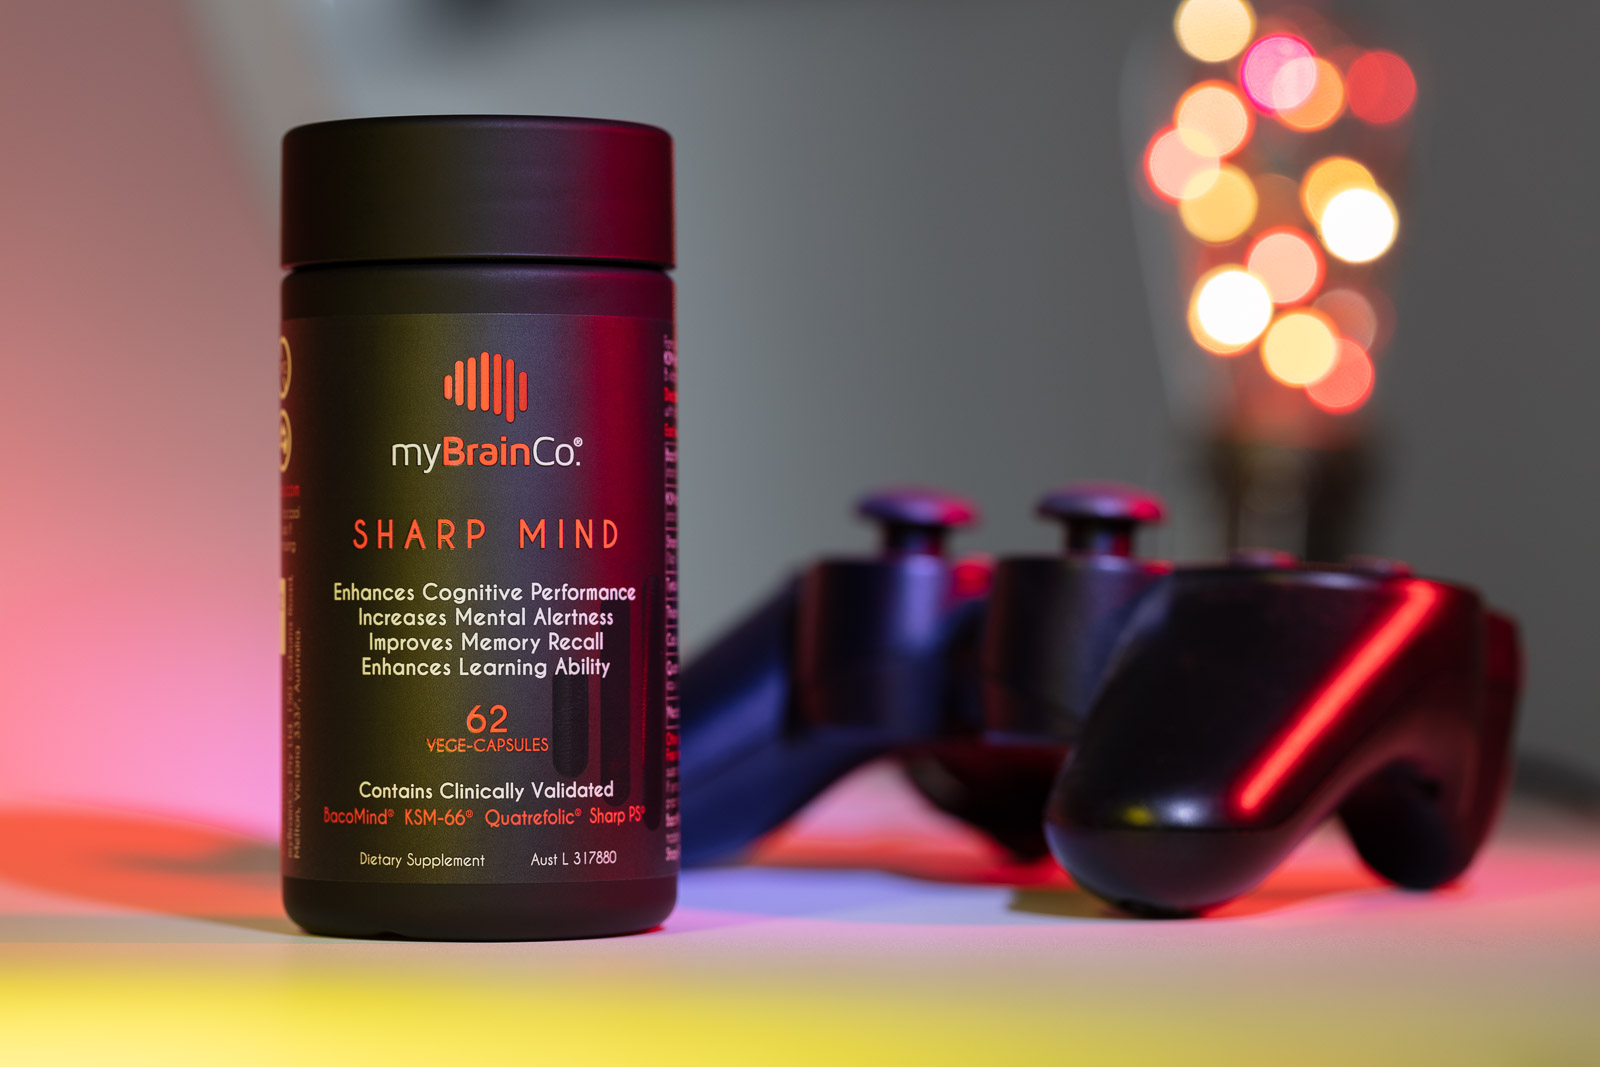 MyBrainCo Sharp Mind Gaming lifestyle